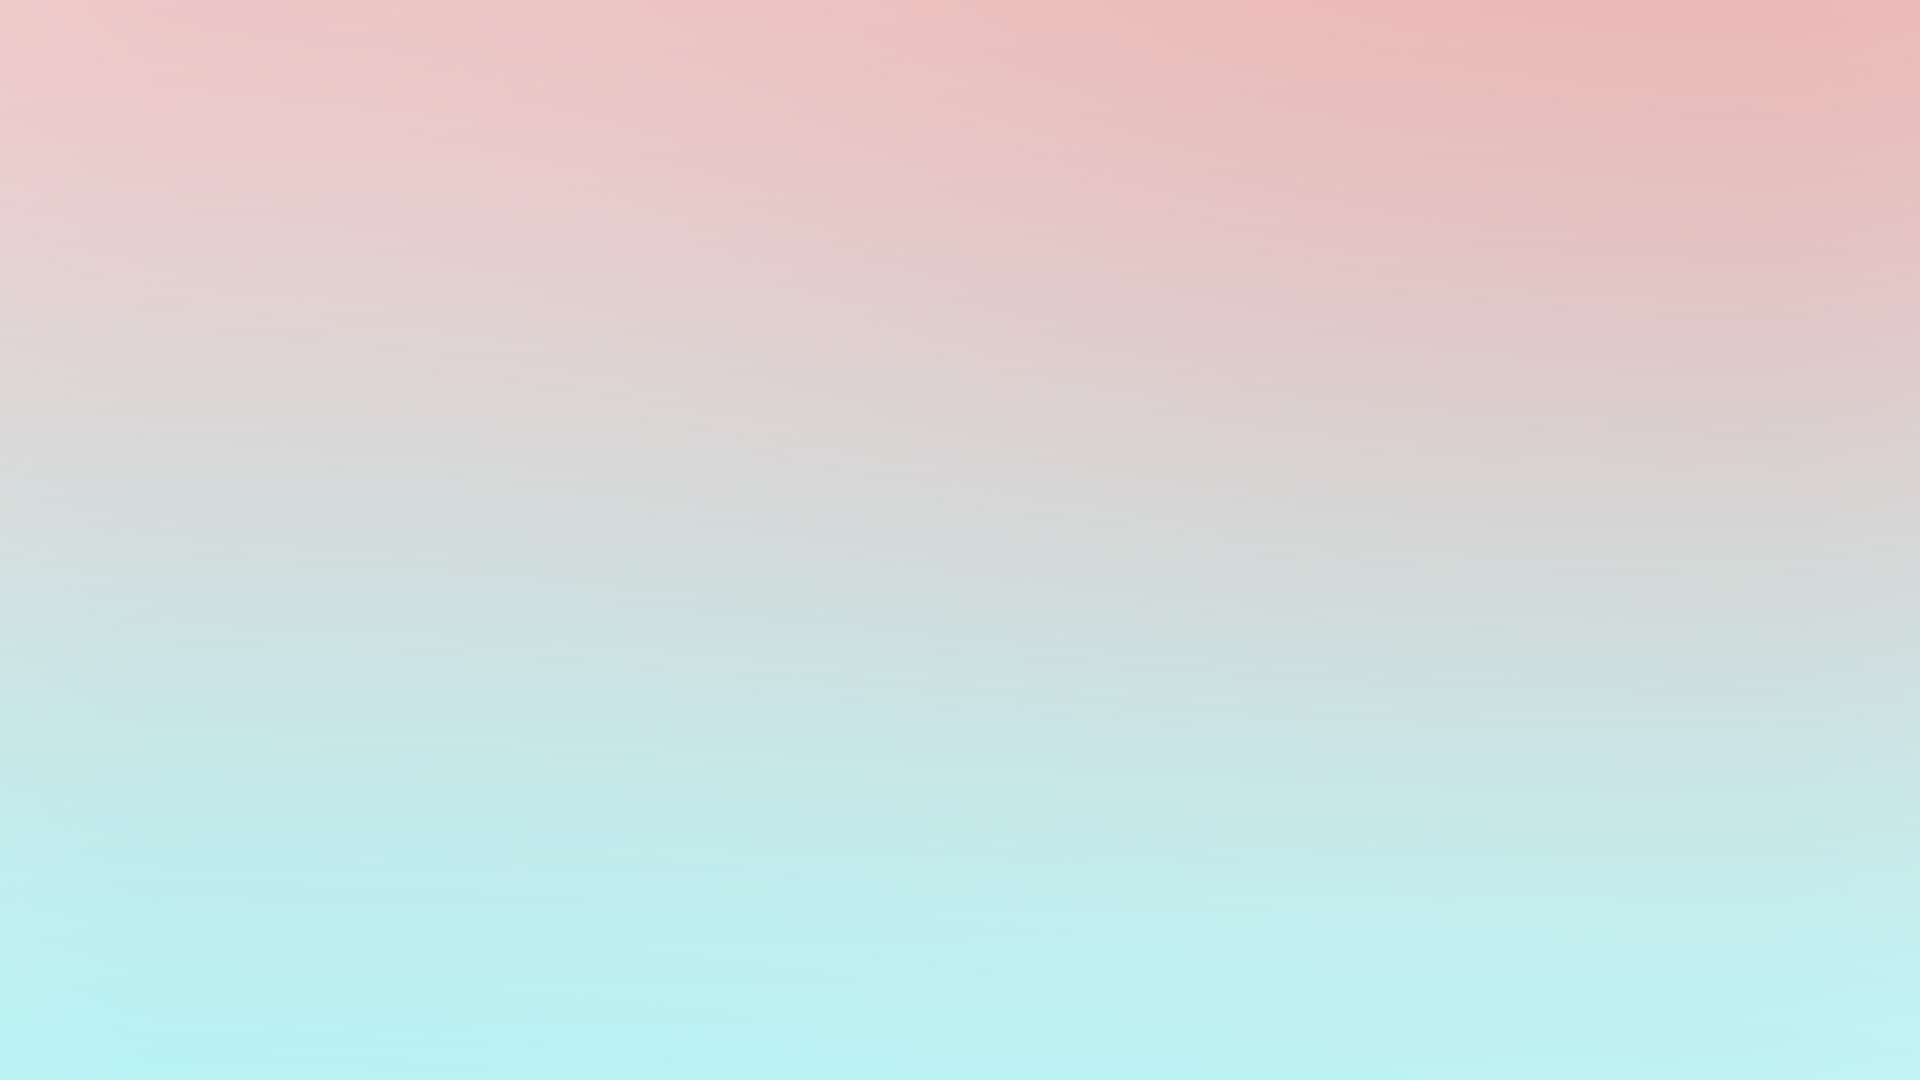 Sm41 Red Blue Soft Pastel Blur Gradation Wallpaper